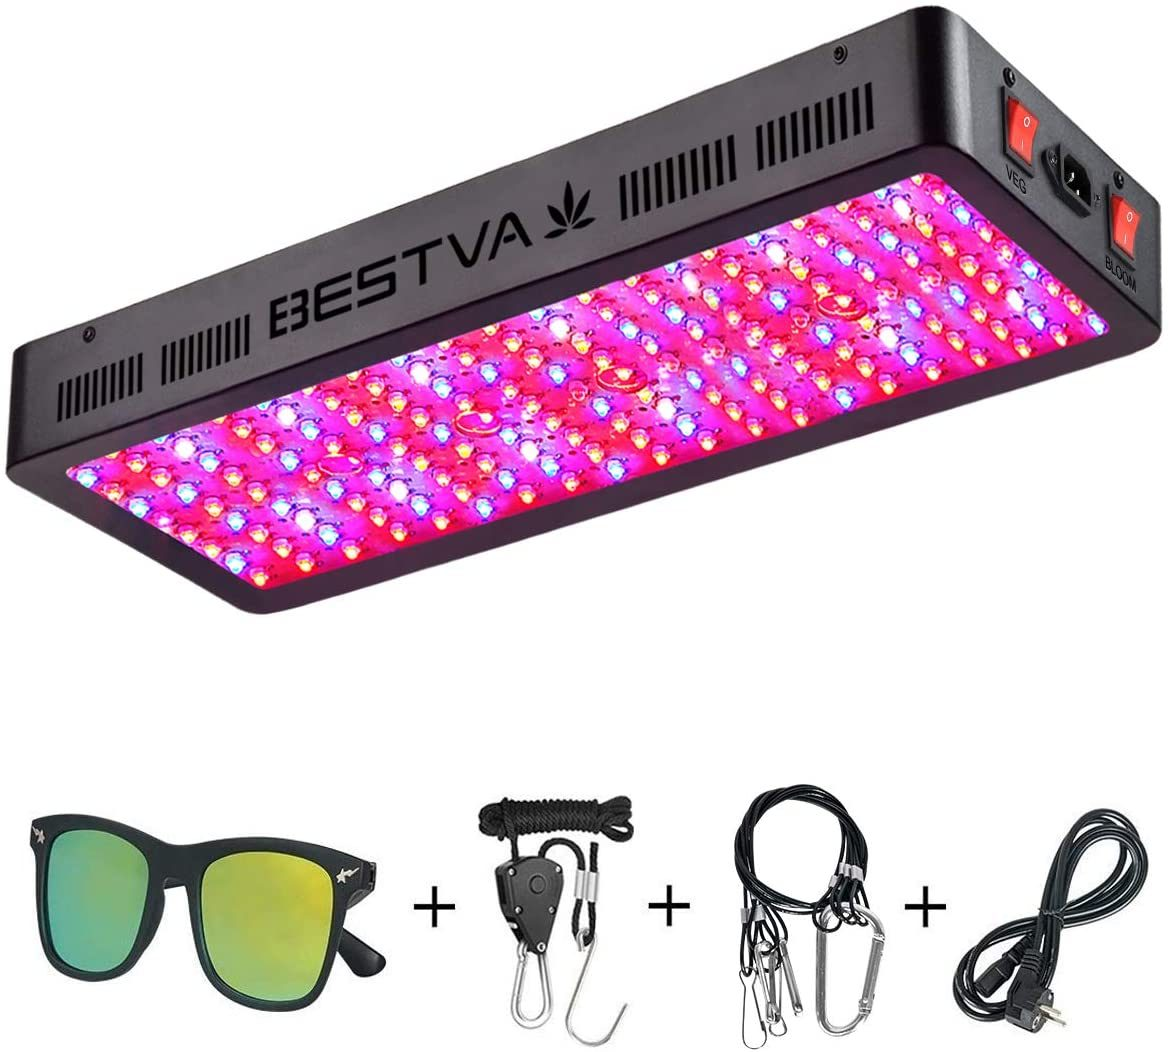 Yajuhoy 1000W LED Grow Light Use with Samsung LM301B LEDs Daisy Chain Dimmable Full Spectrum Grow Lights for Indoor Plants Veg Flower Greenhouse Growing Lamps with MeanWell Driver